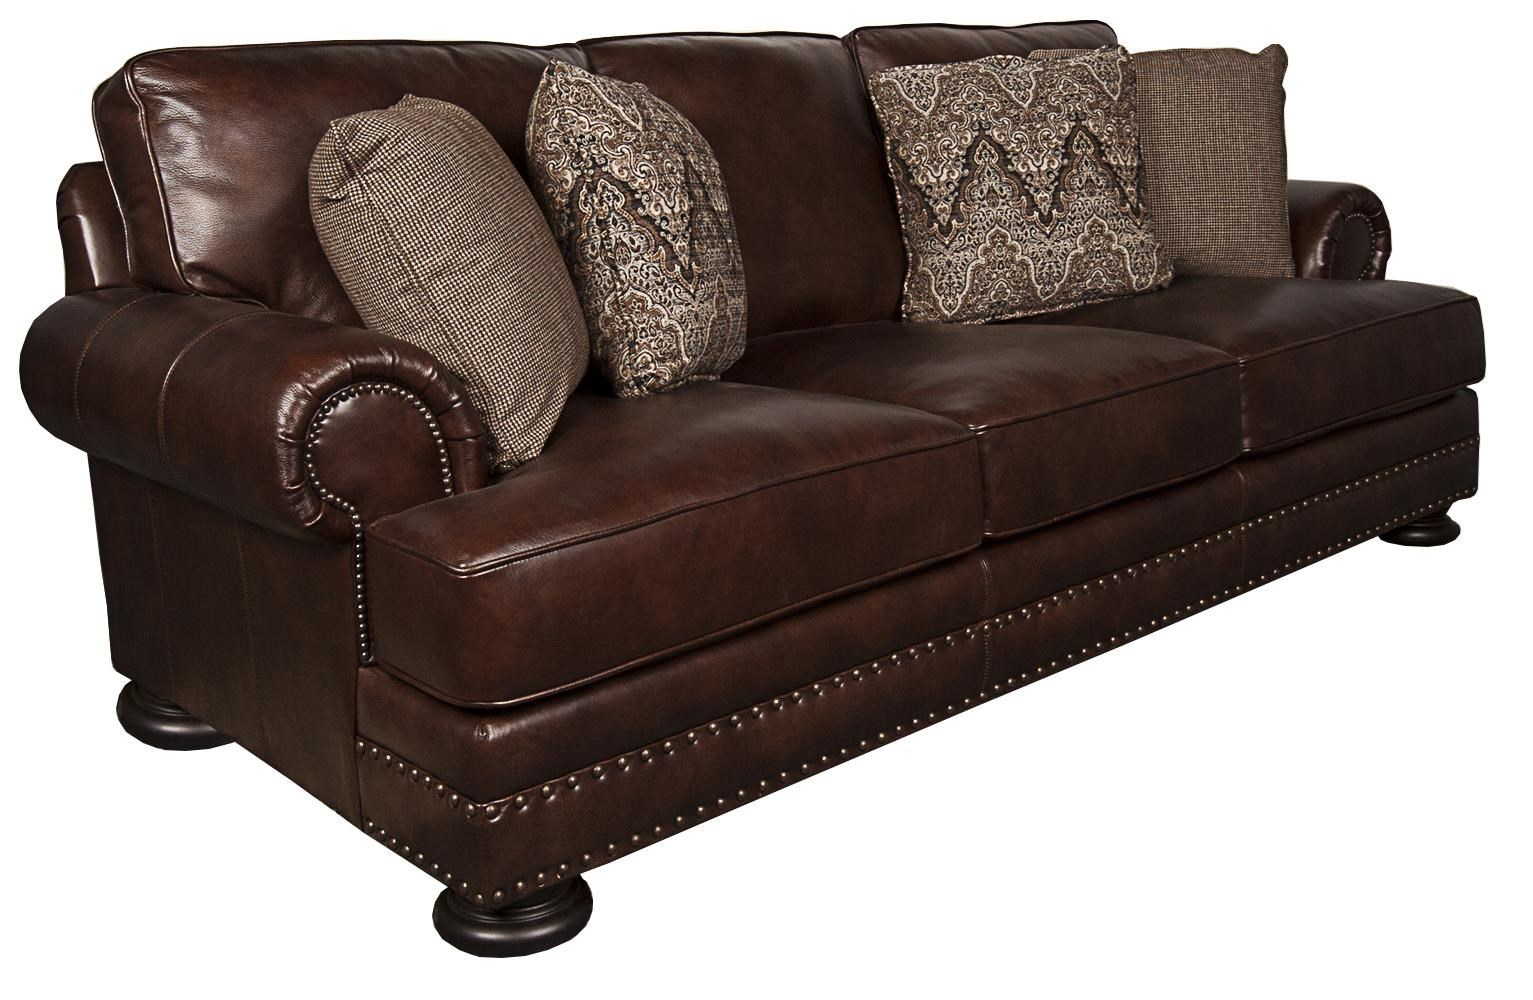 bernhardt foster 100 leather sofa morris home sofas